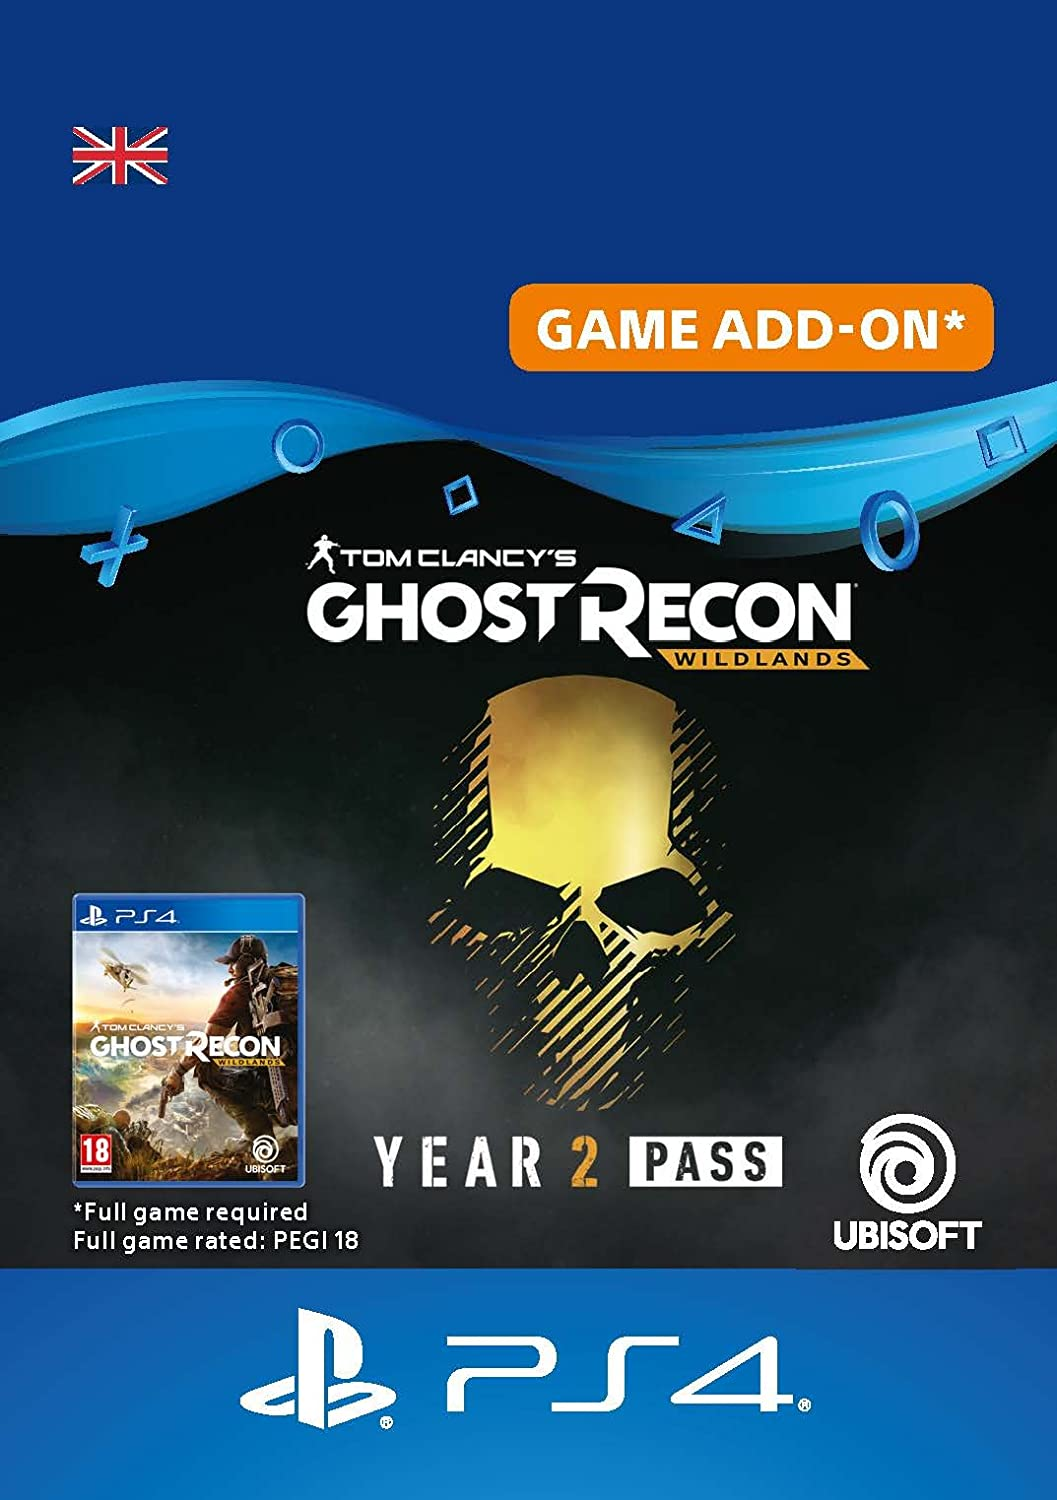 Tom Clancy's Ghost Recon Wildlands - Year 2 Pass DLC | PS4 Download